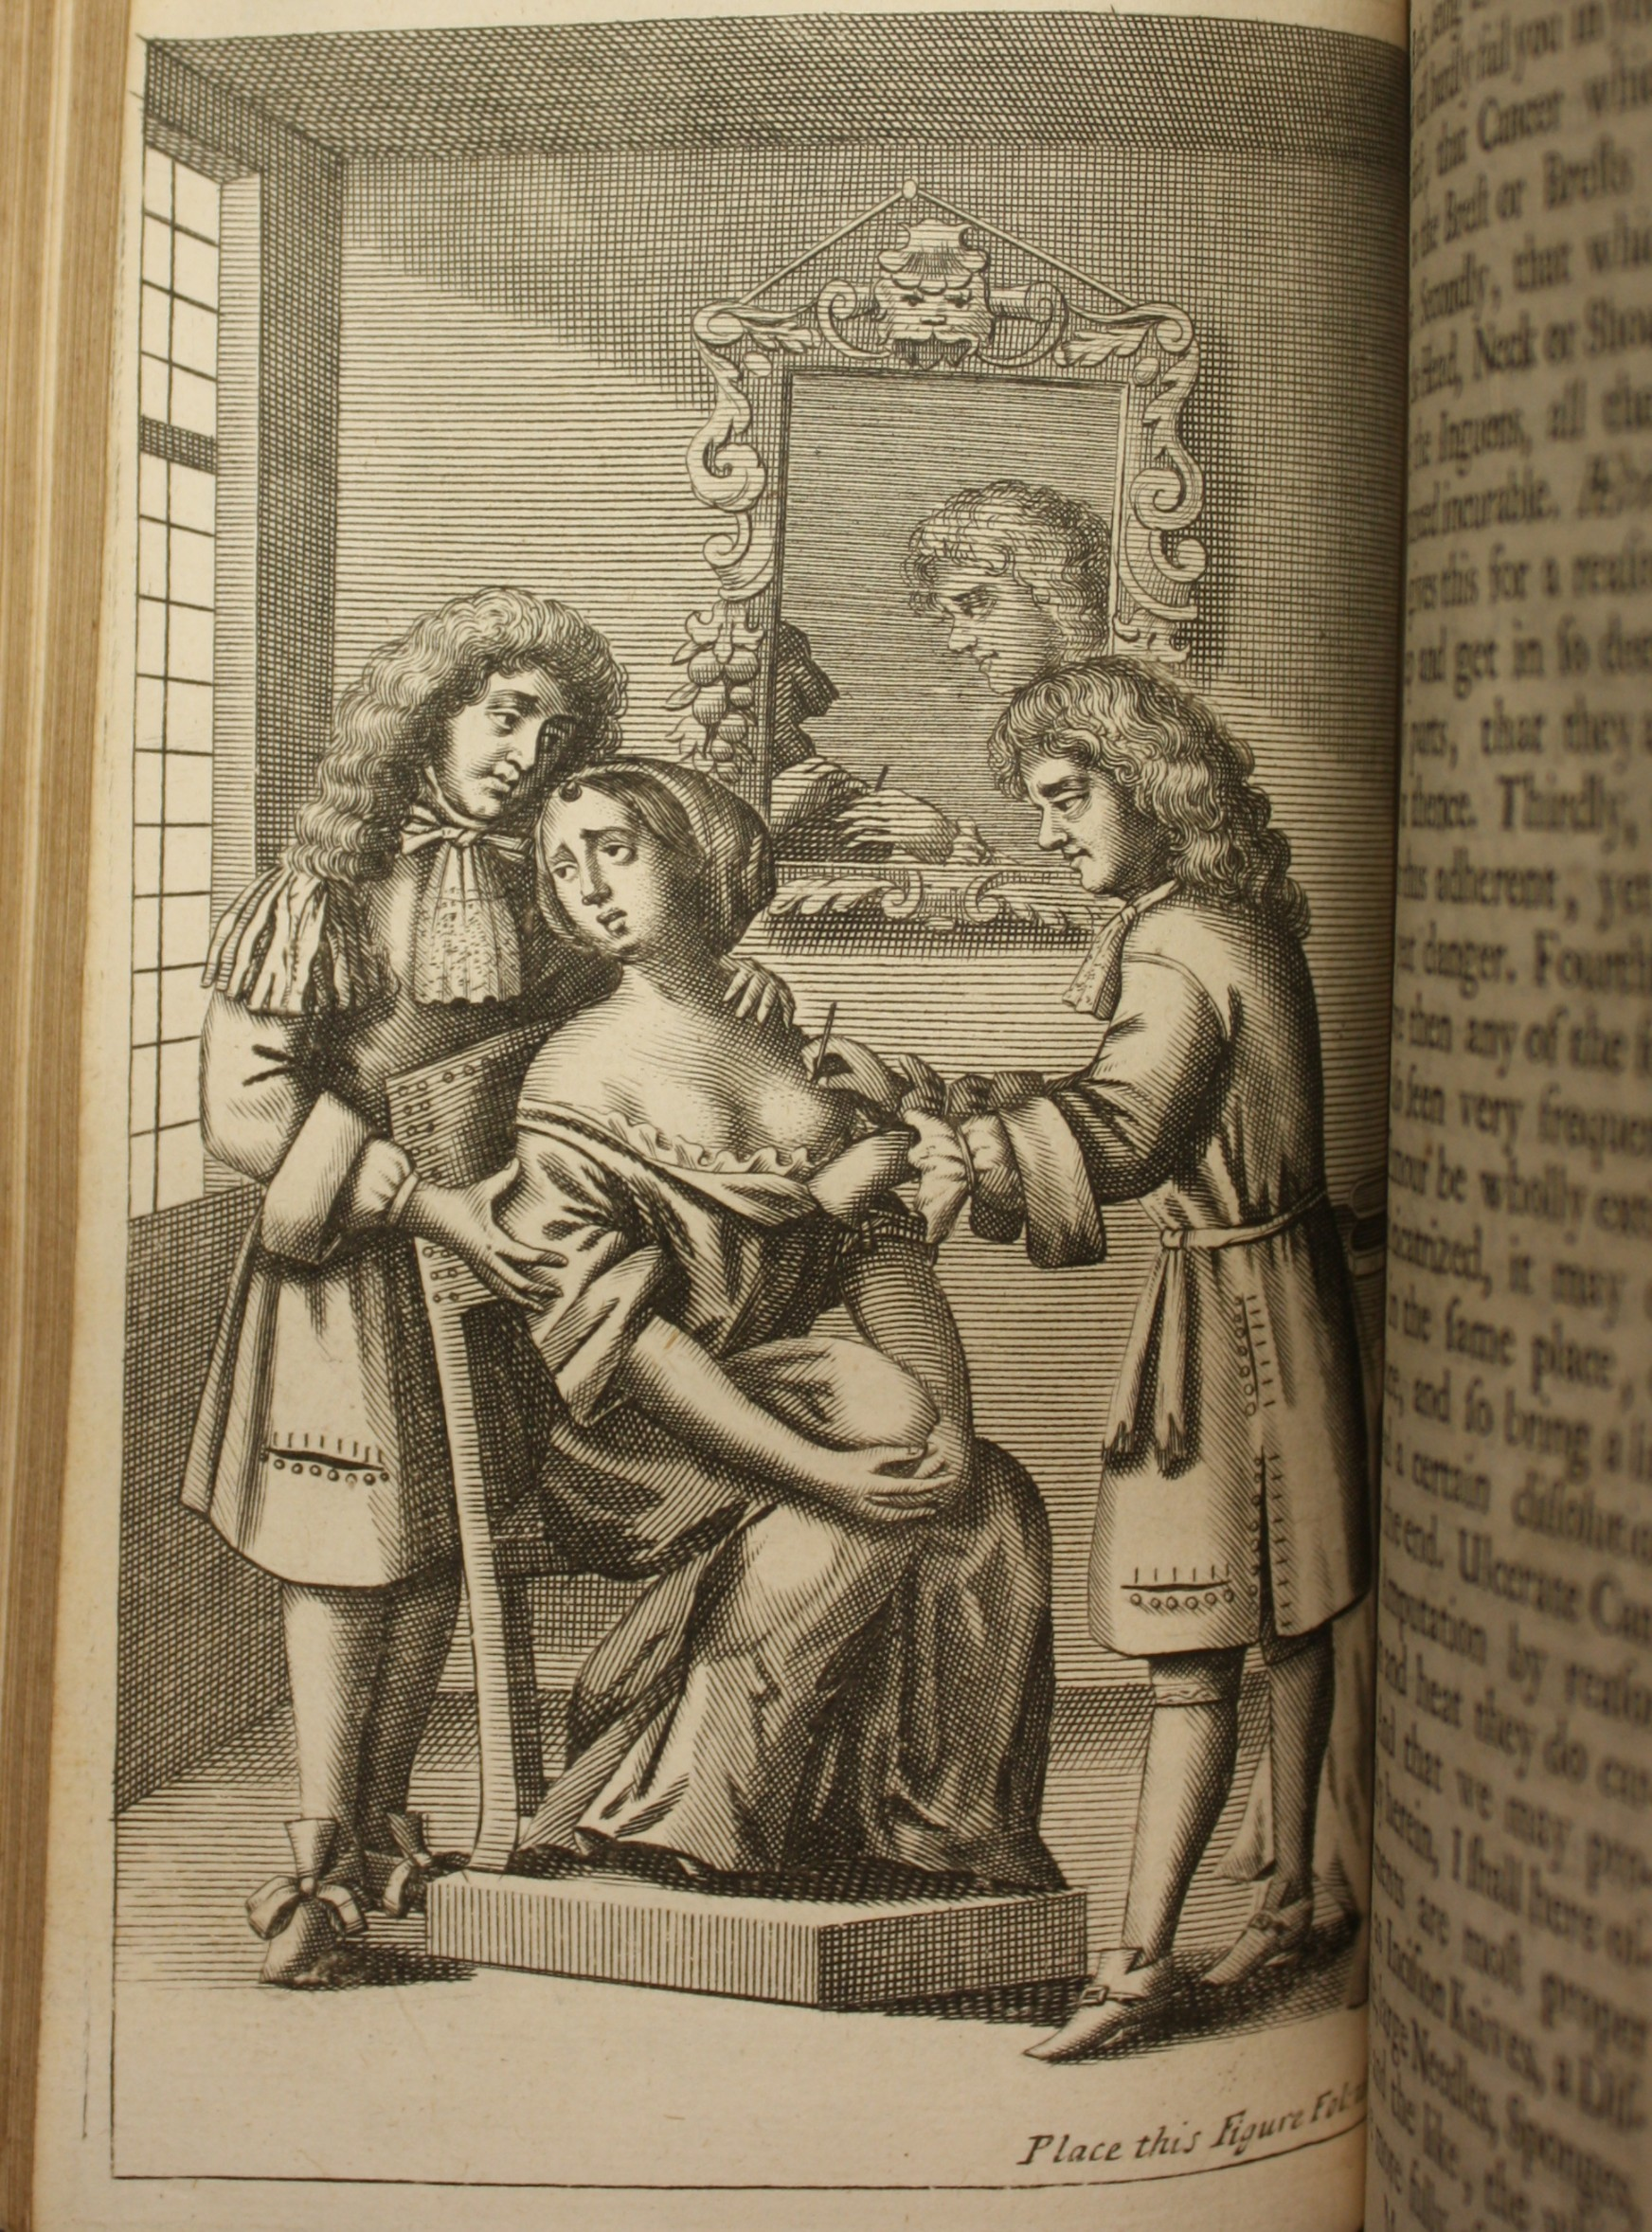 Engraving of an operation to remove cancer